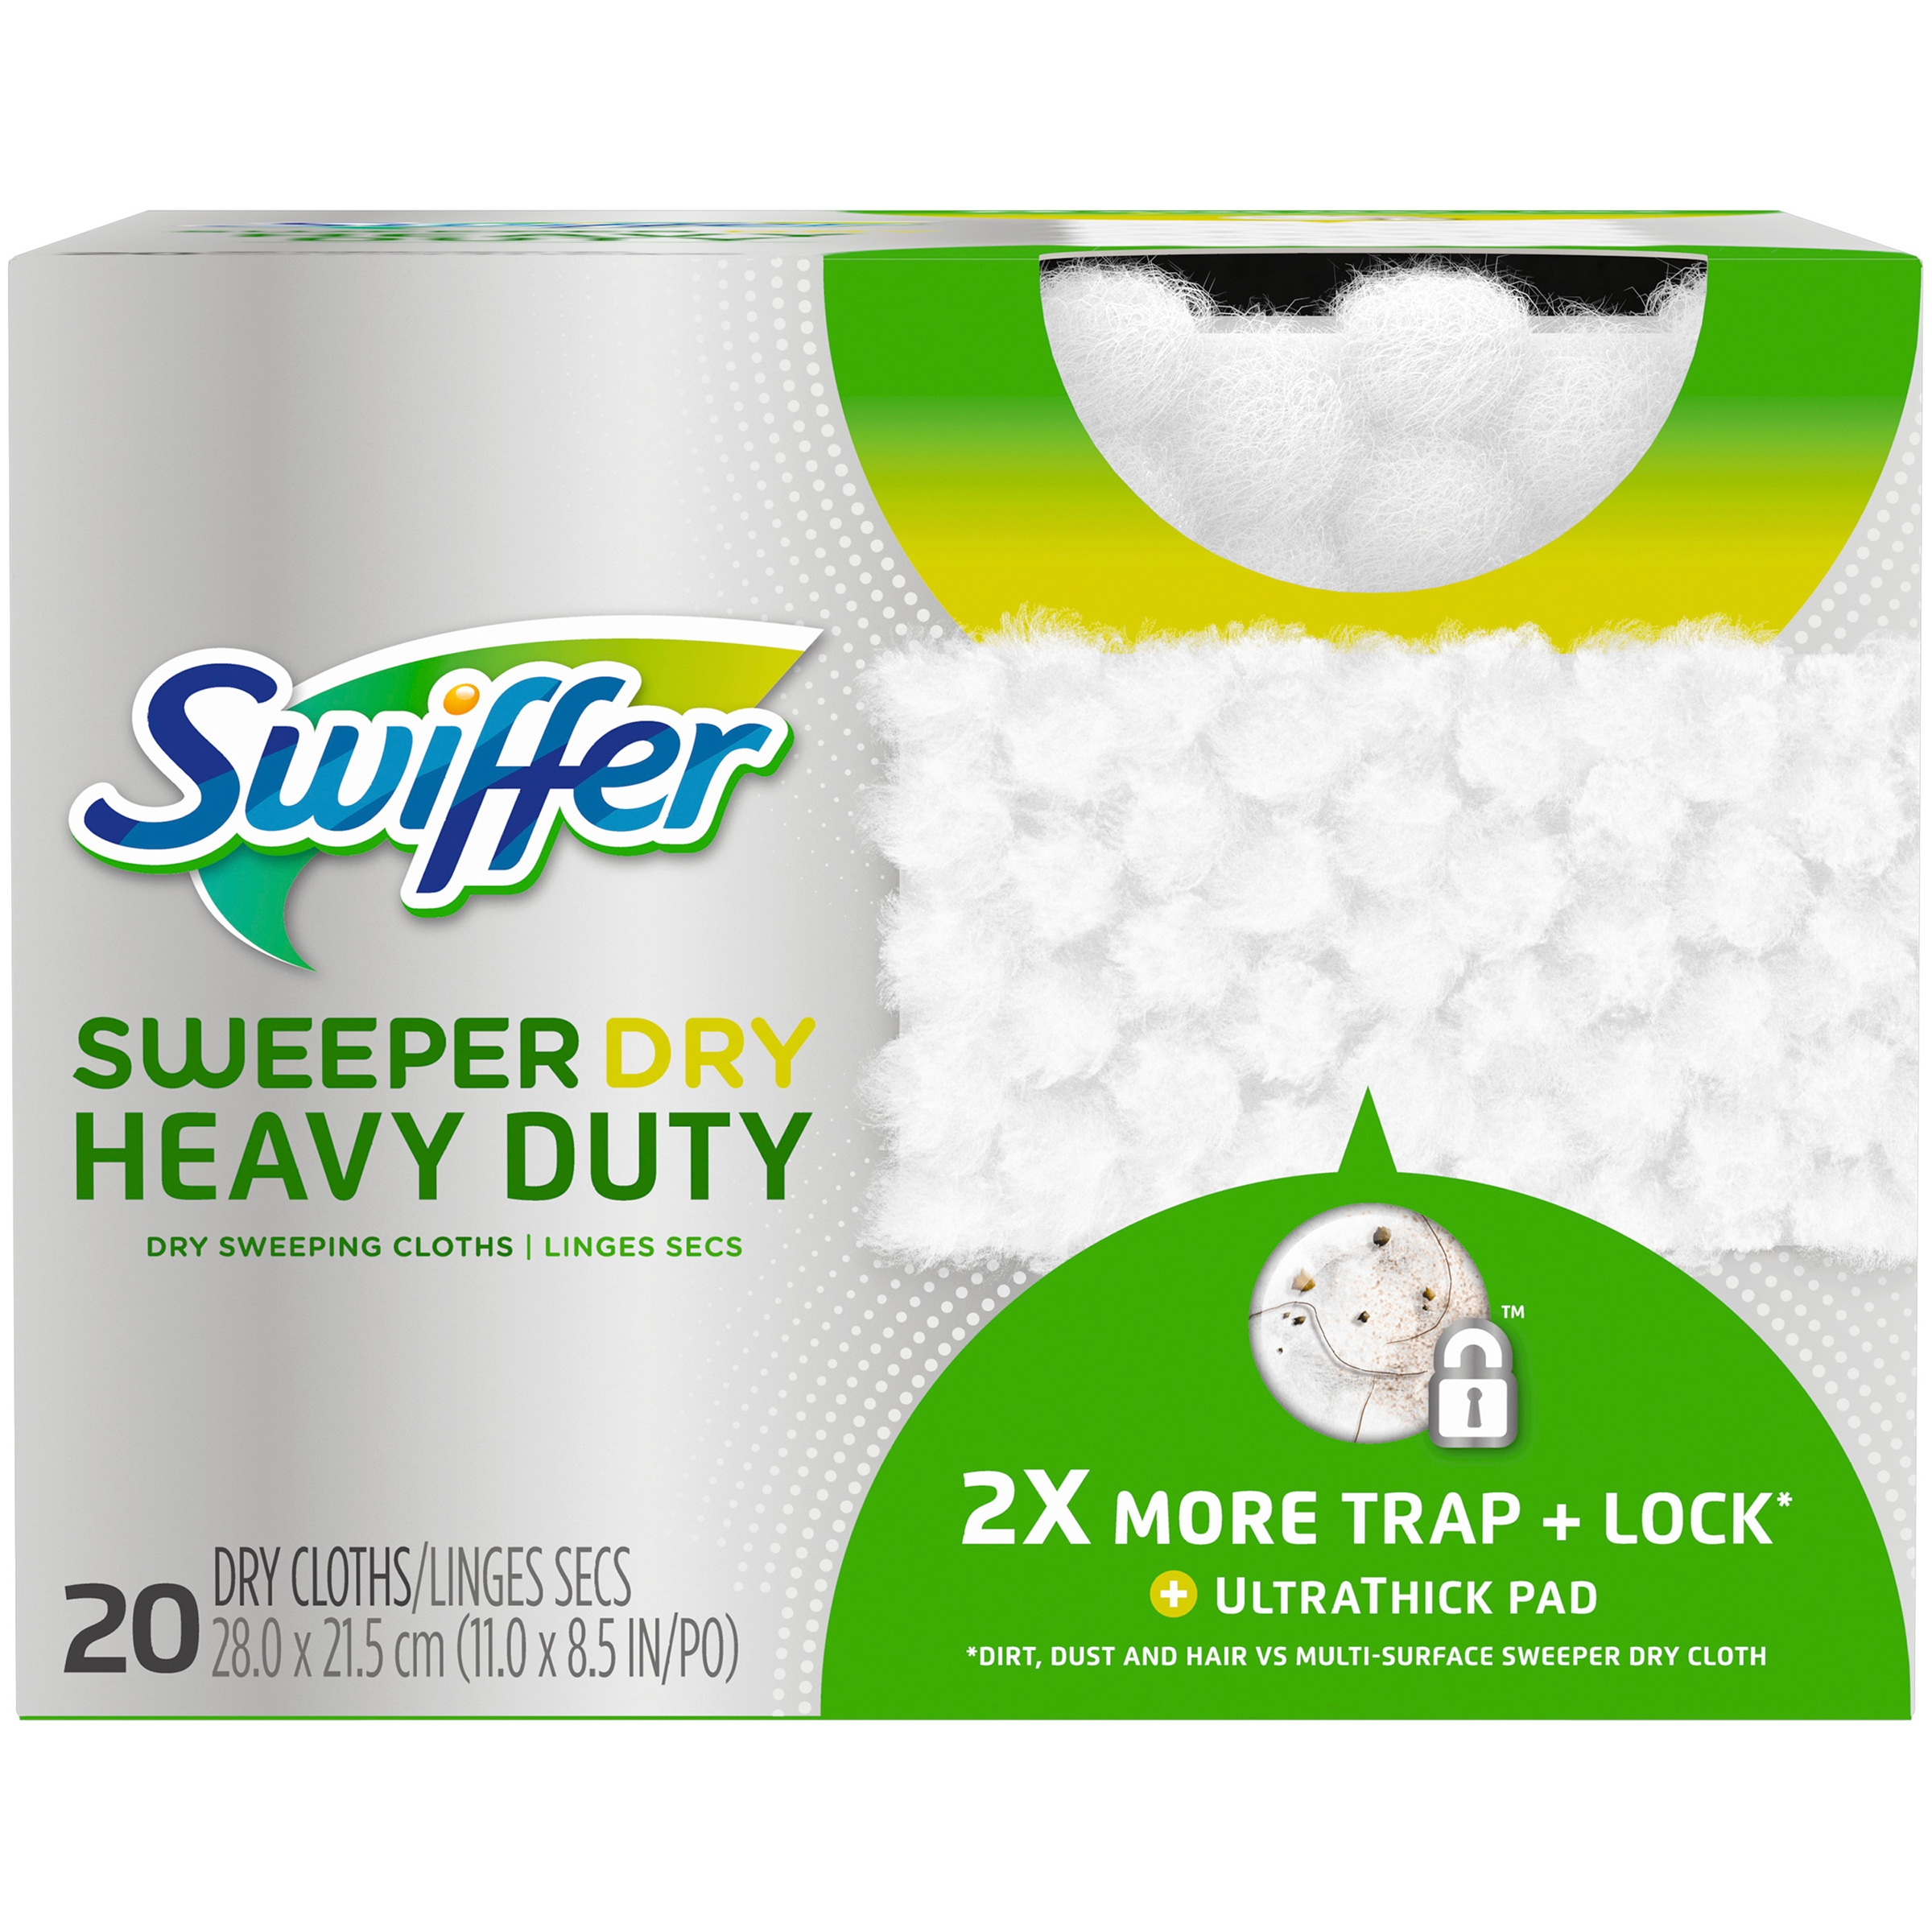 Swiffer Sweeper Heavy Duty Dry Sweeping Cloths, 20 Count